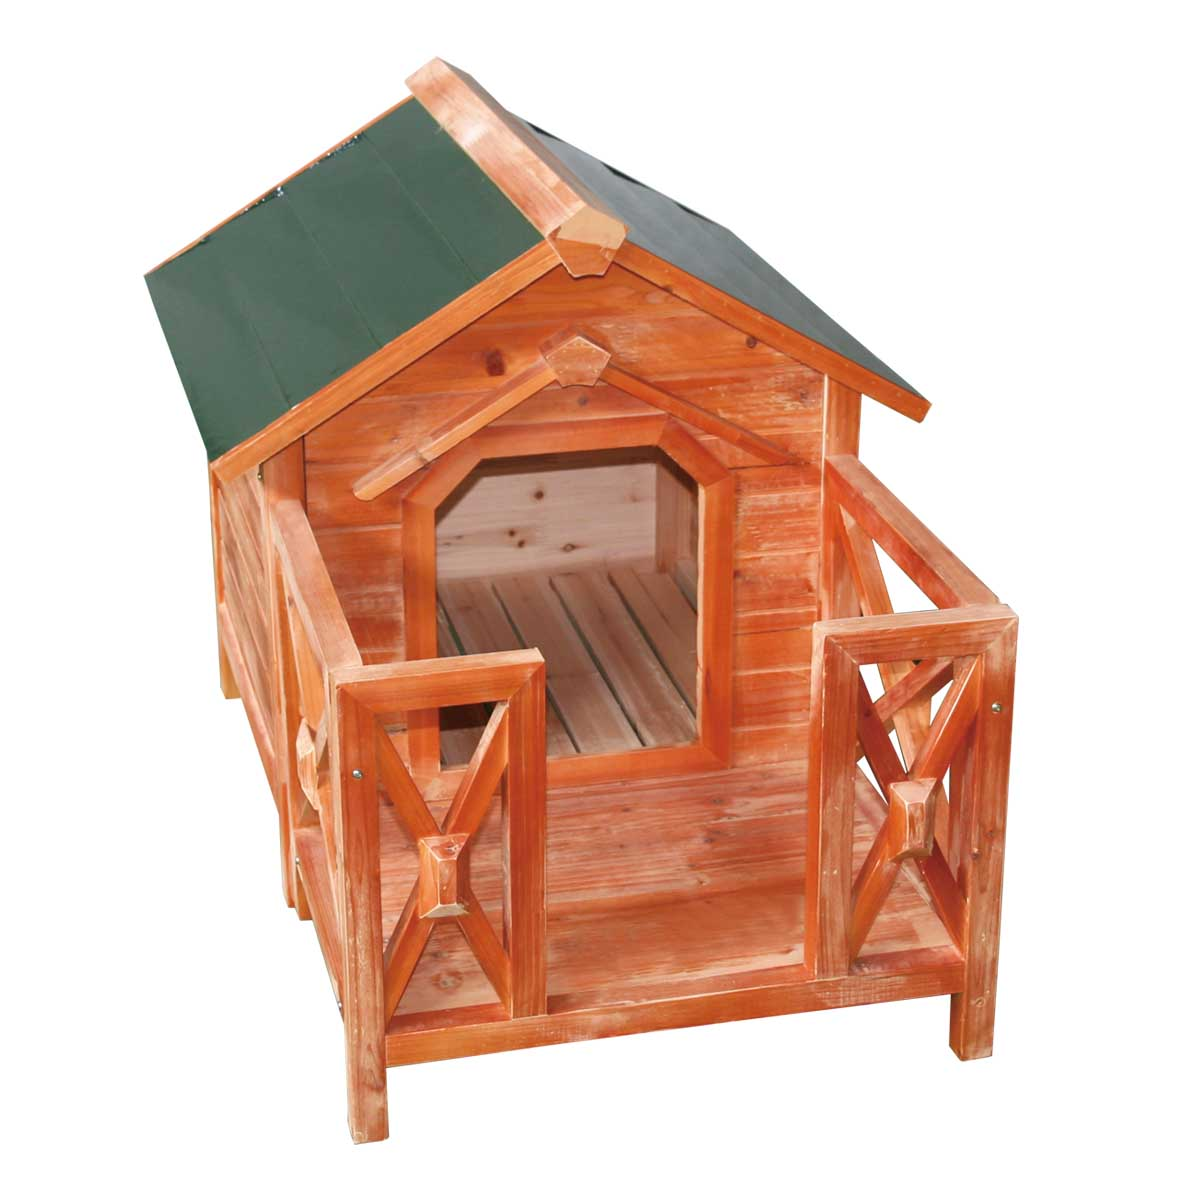 Very Impressive portraiture of Details about Wood Dog House Outdoor Wooden Pet Shelter Bed M w/ Porch  with #AB5420 color and 1200x1200 pixels